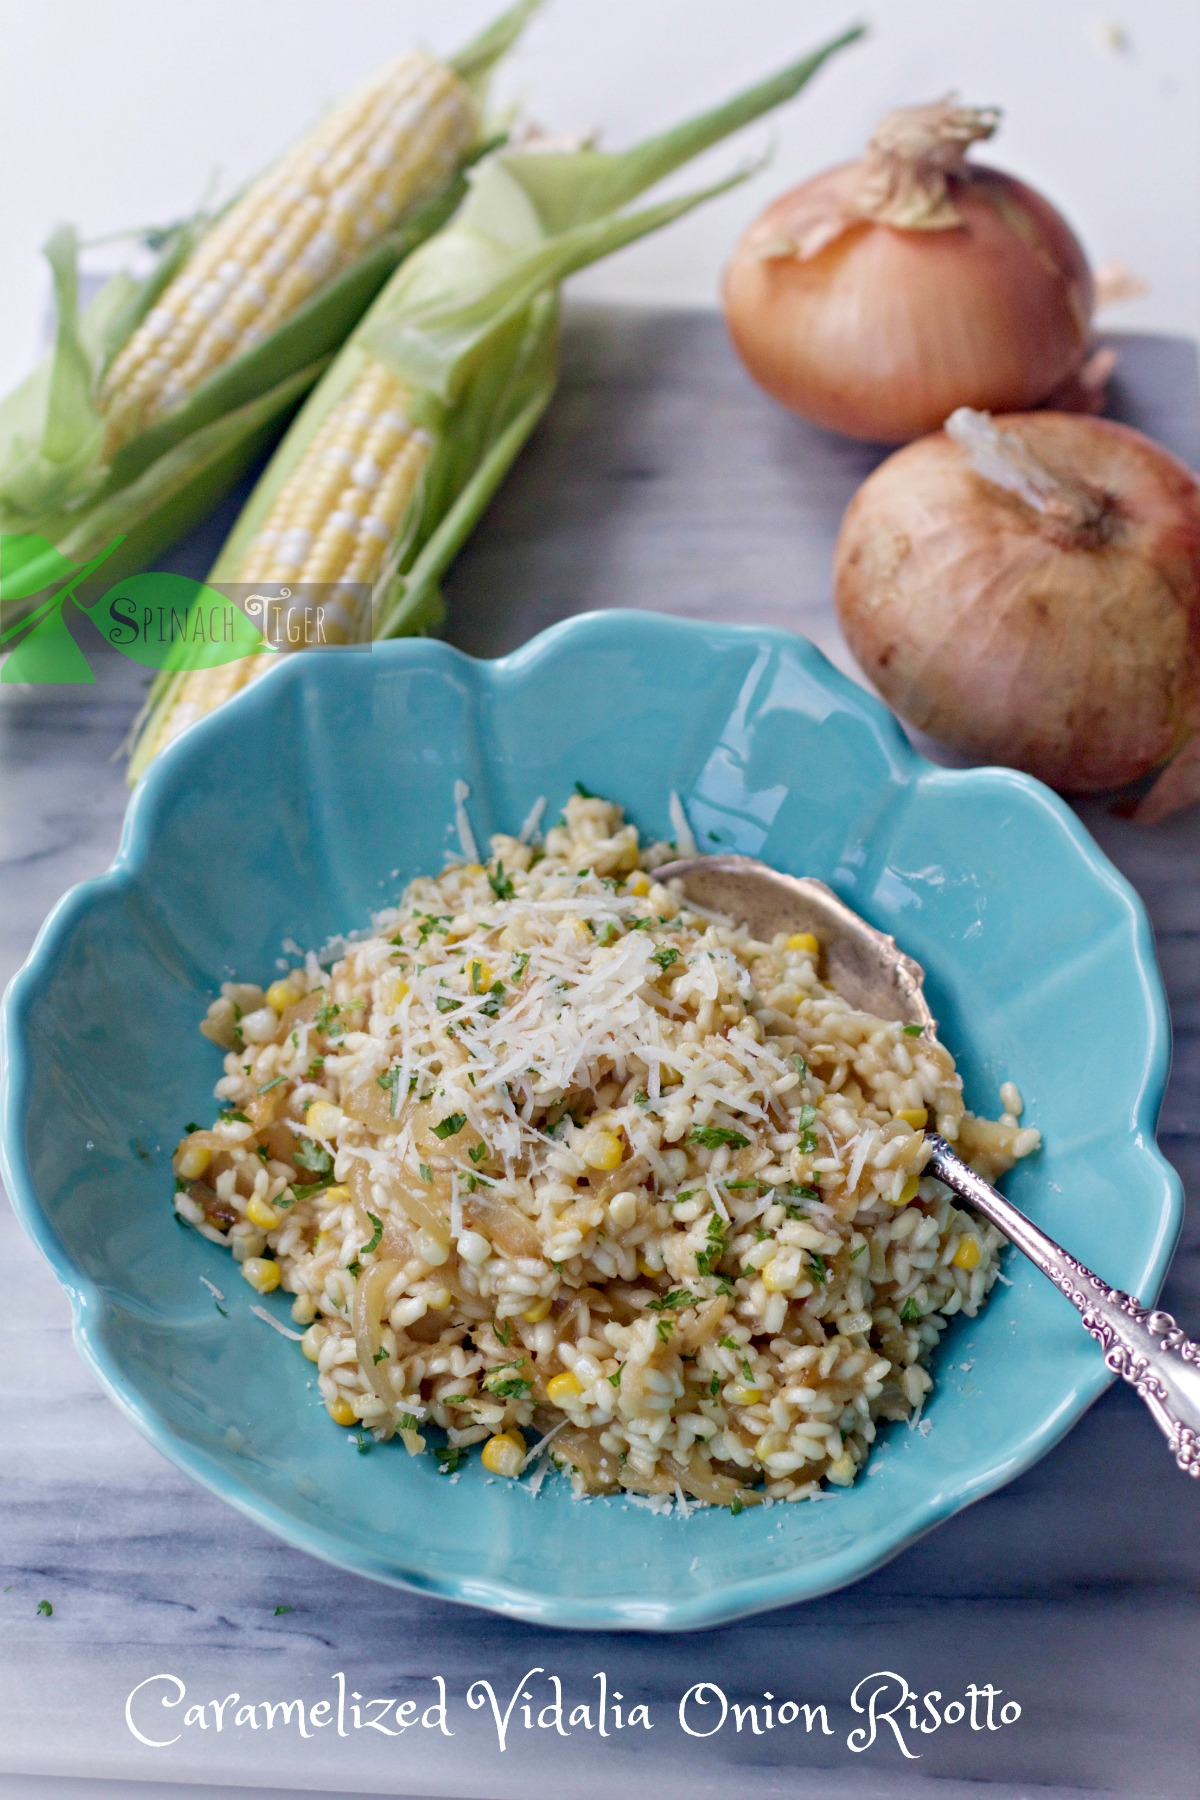 Caramelized Onion Risotto from Spinach Tiger